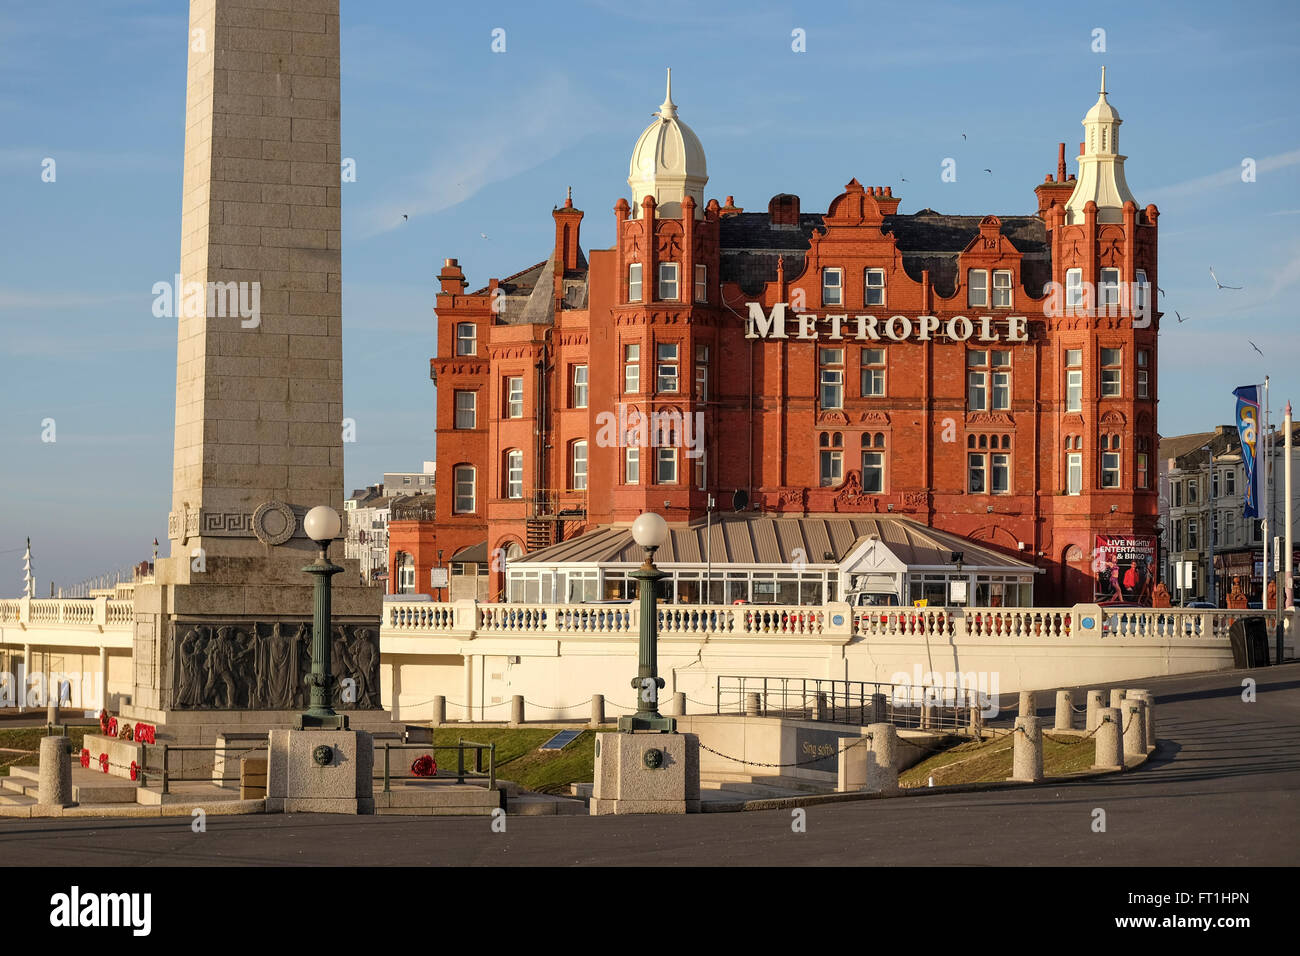 The Metropole Hotel on the Sea front at Blackpool - Stock Image